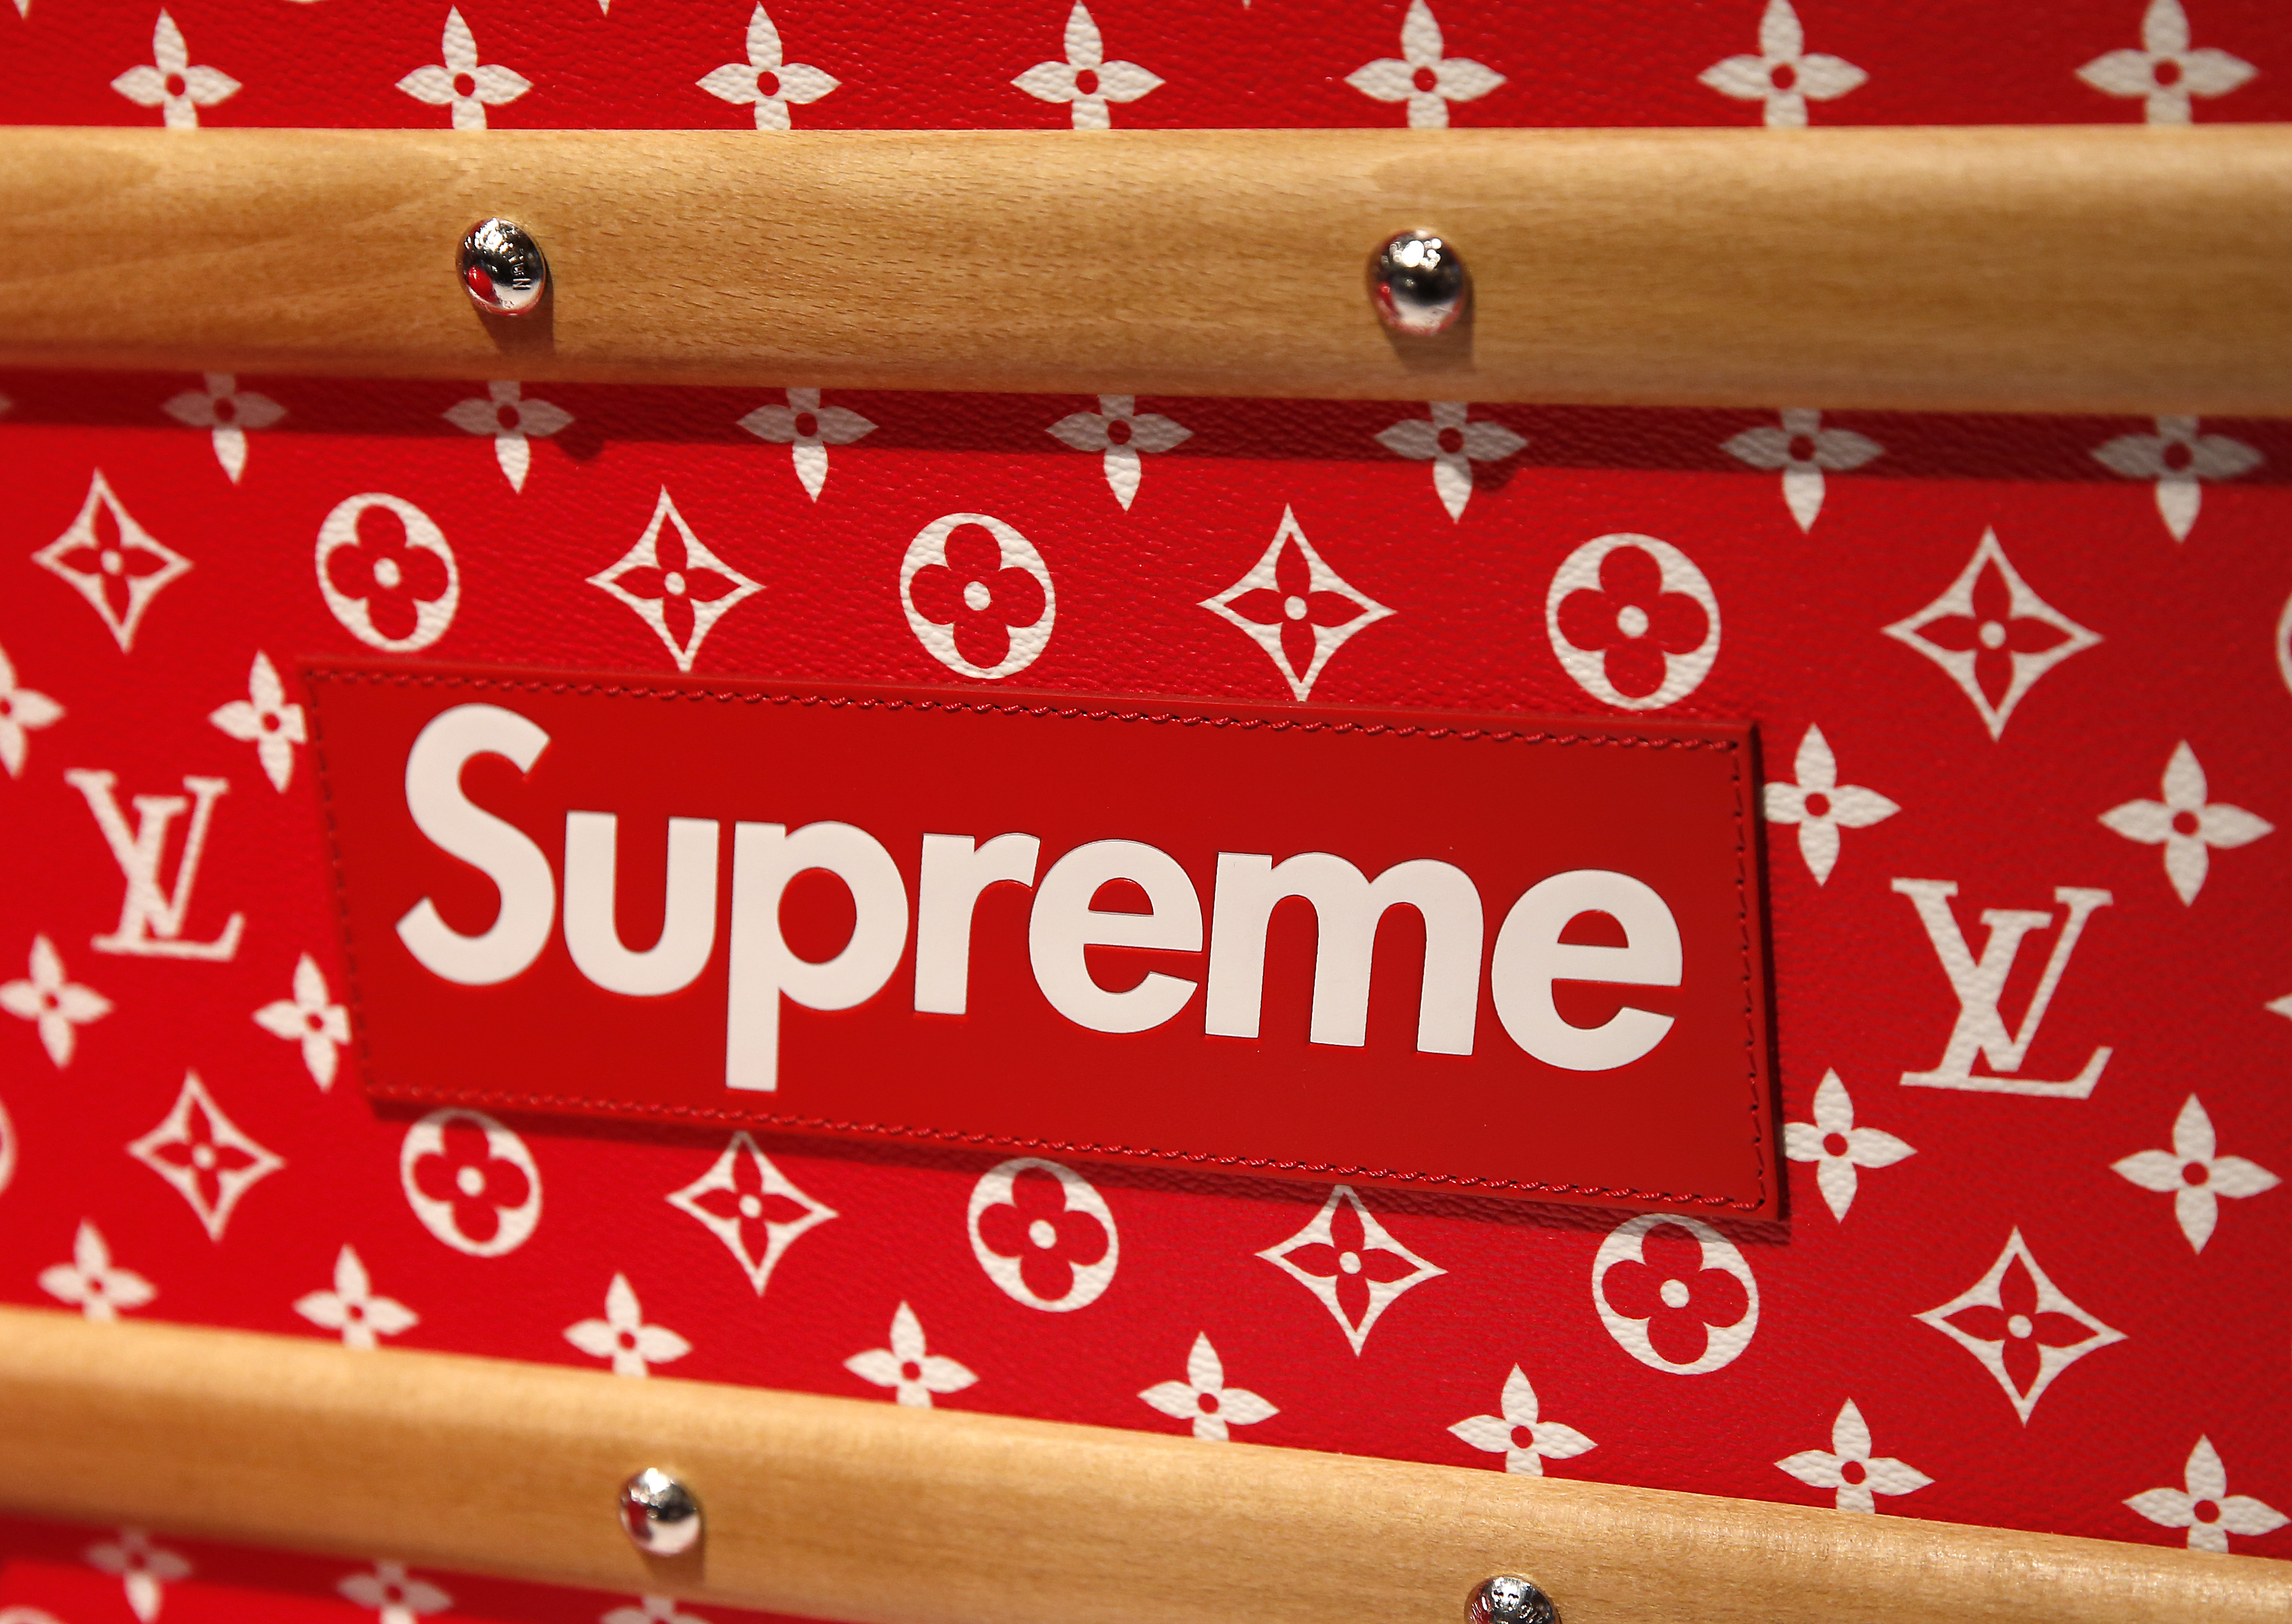 Battle of Supremes: How 'legal fakes' are challenging a $1B brand